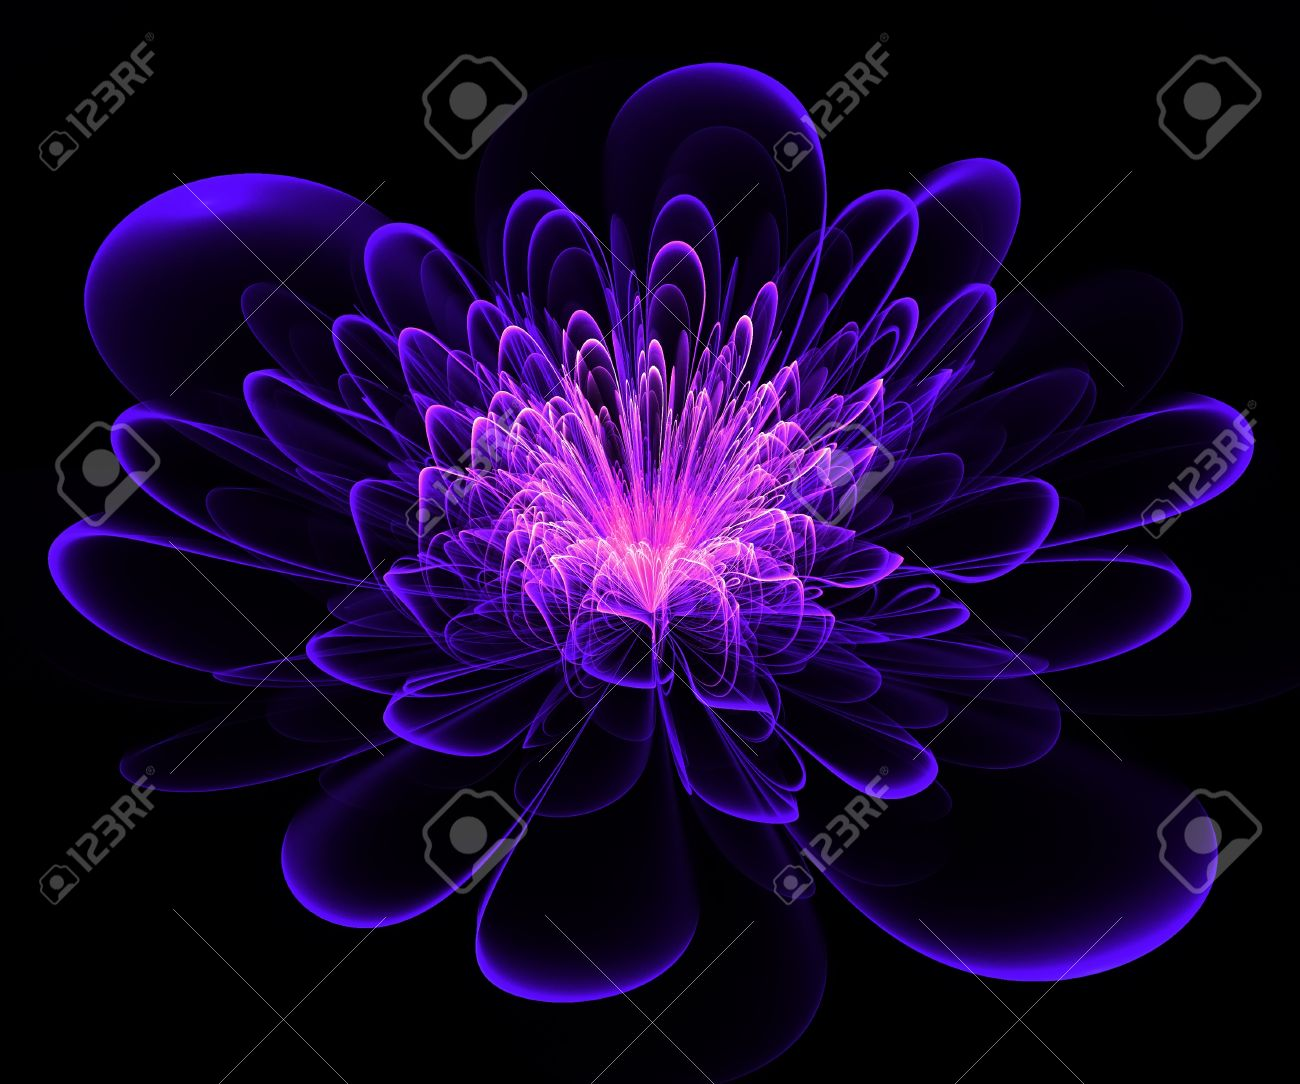 Beautiful blue and purple flower on black background computer beautiful blue and purple flower on black background computer generated graphics stock photo izmirmasajfo